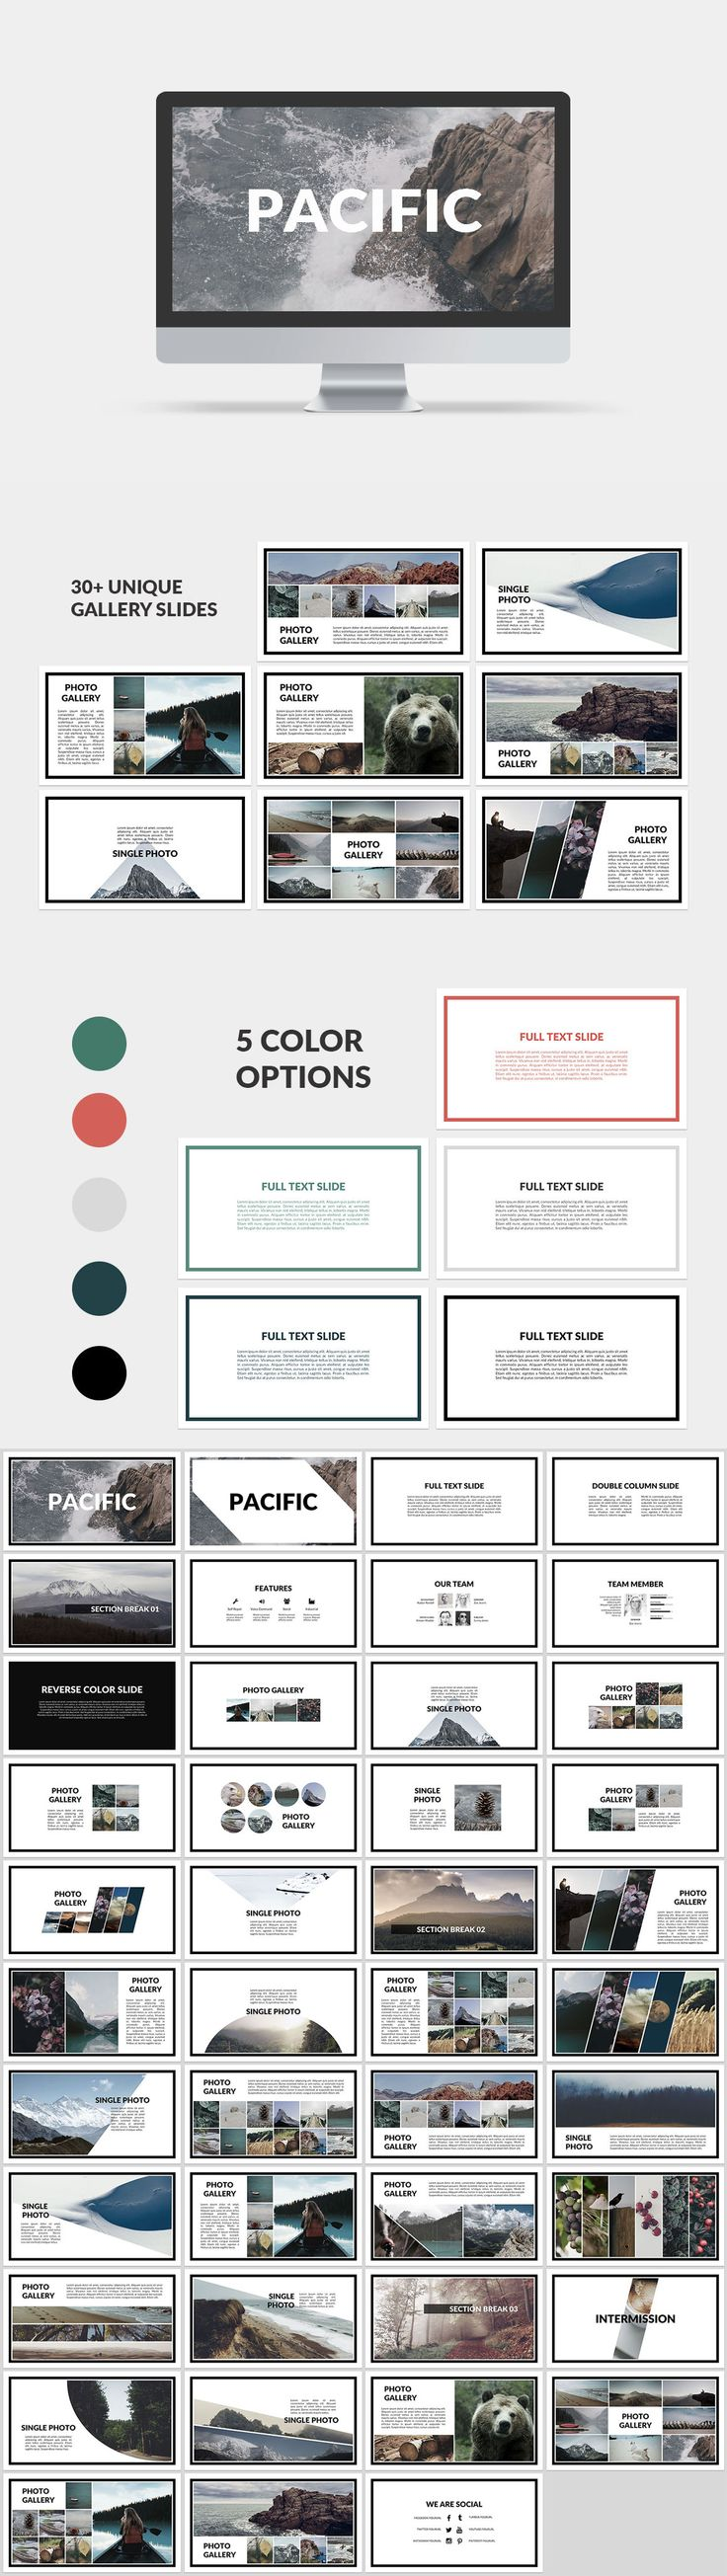 Pacific Presentation Template Selling Online Courses Ebooks For